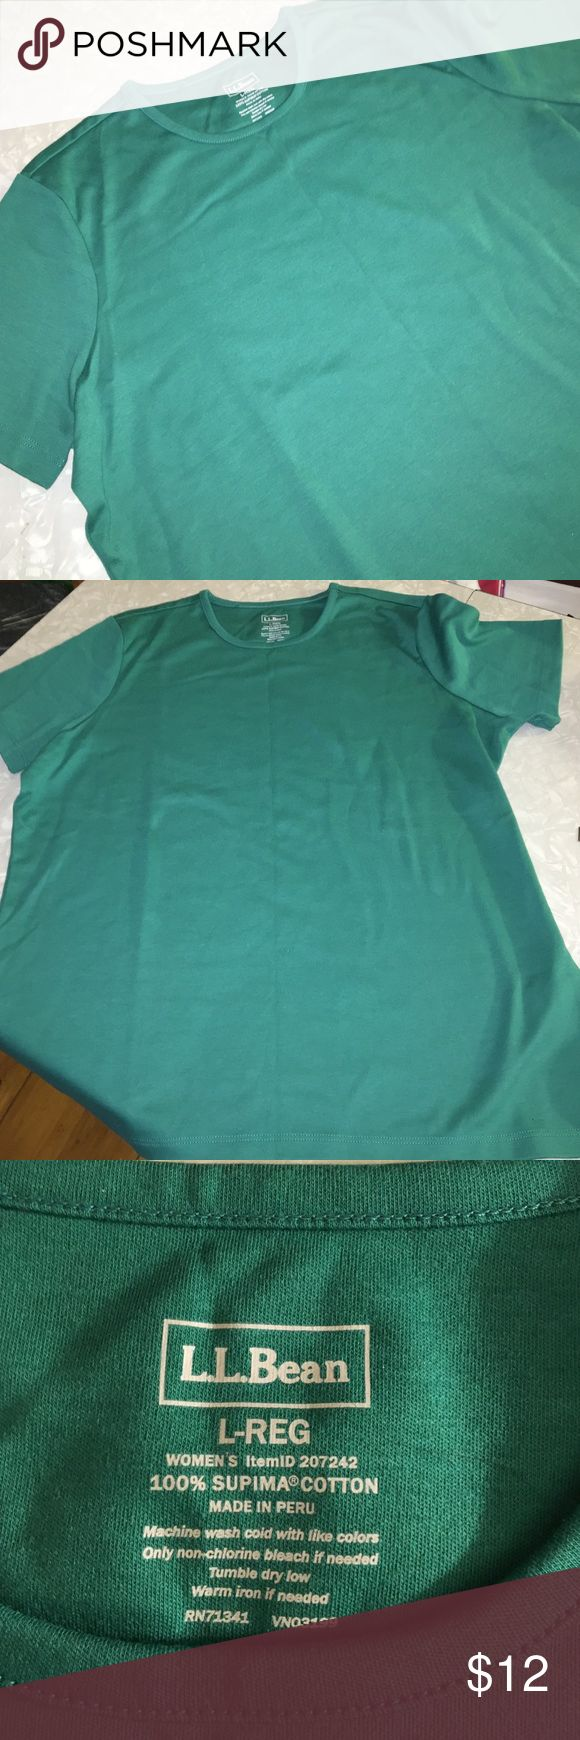 "NEW LLBean green short sleeve top large NWOT Green size large regular women's short-sleeved top. It is 100% supima cotton. Shoulder to shoulder it is 15-3/4"". Sleeve length is a hair over seven-1/2"". From Bottom of collar to bottom of shirt it is 24-1/4"". This is a nice fall color green. Excellent for layering! It looks wrinkled because it was a catalog order. Never even been washed! Best color picture is number four. LLBean Tops"